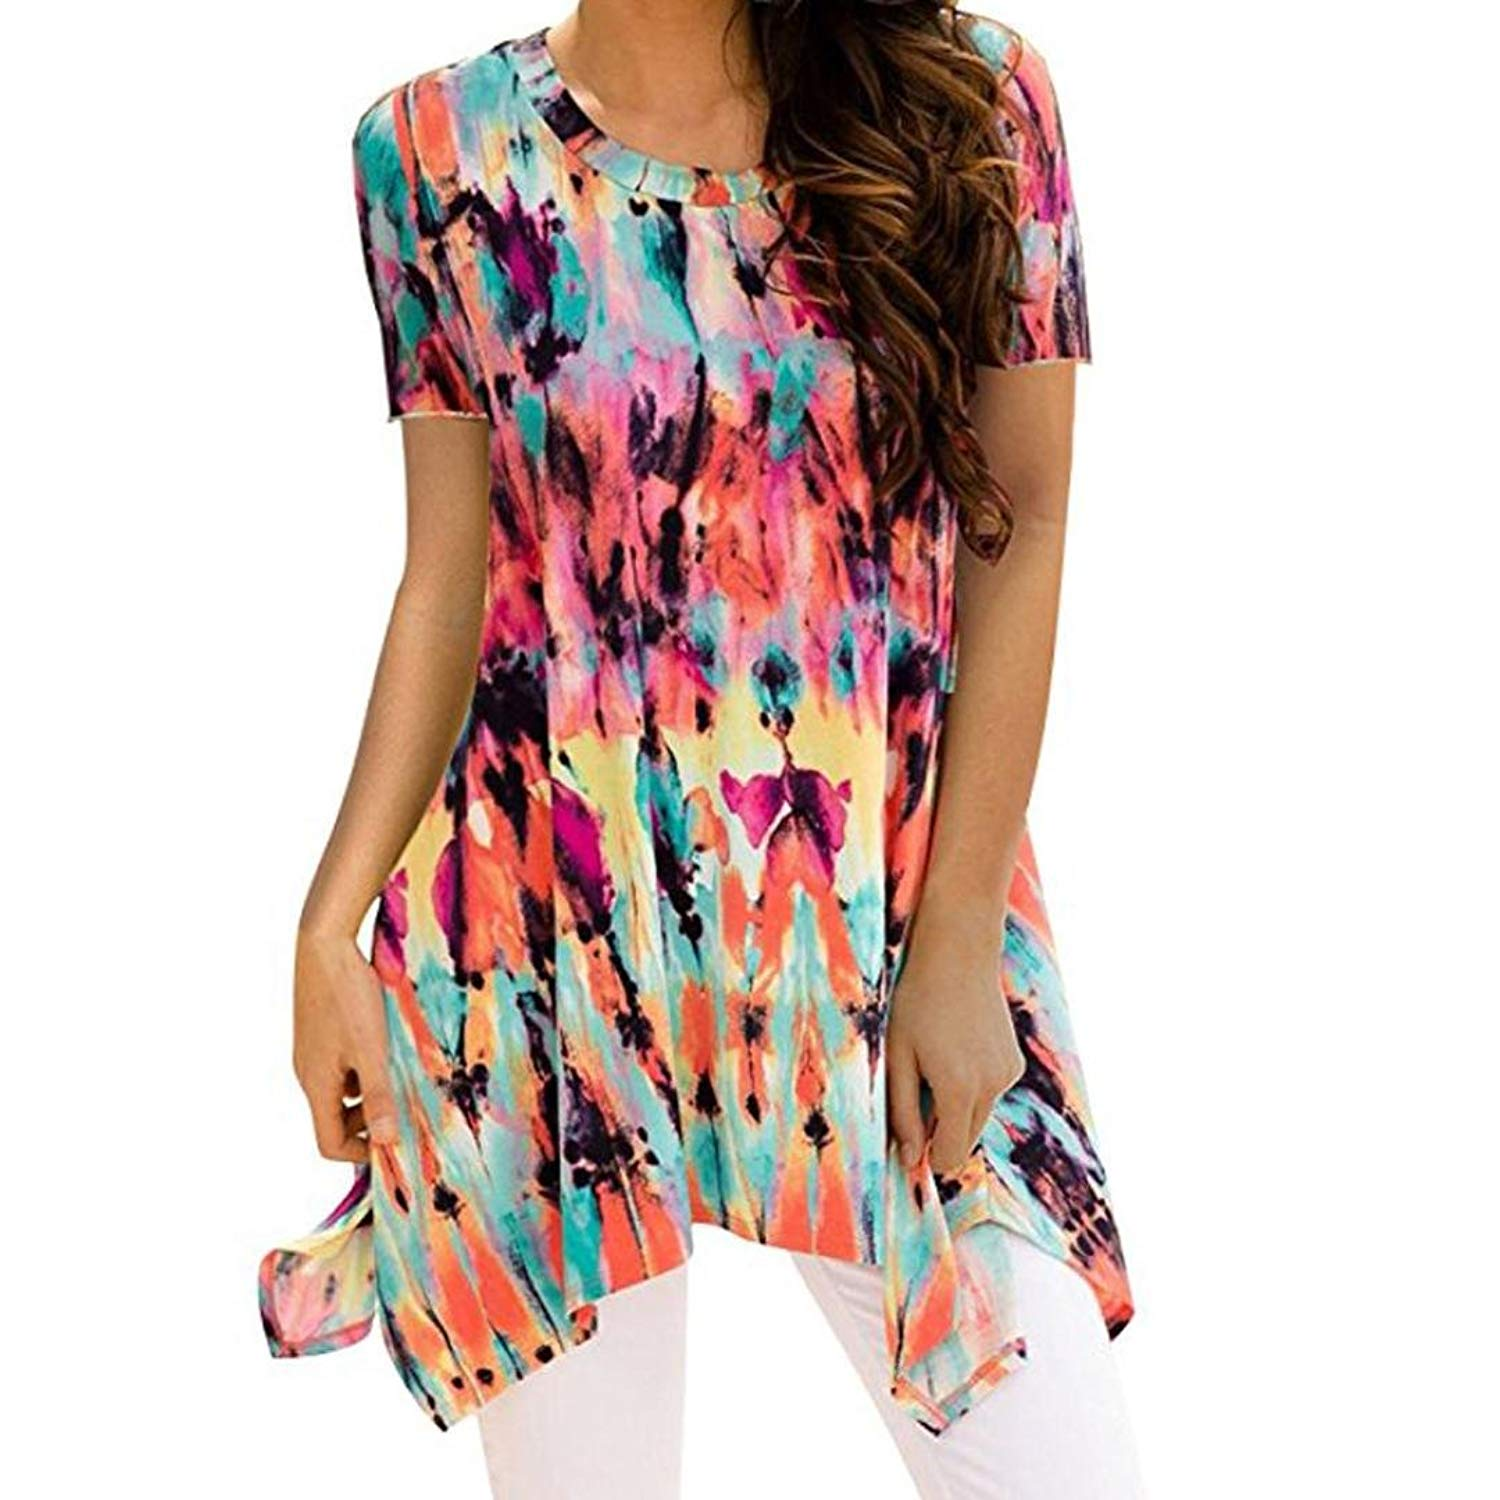 Inkach- Womens Loose T-Shirts, Casual Summer Short Sleeve Tie-Dye Printed Tunic Blouses Tops